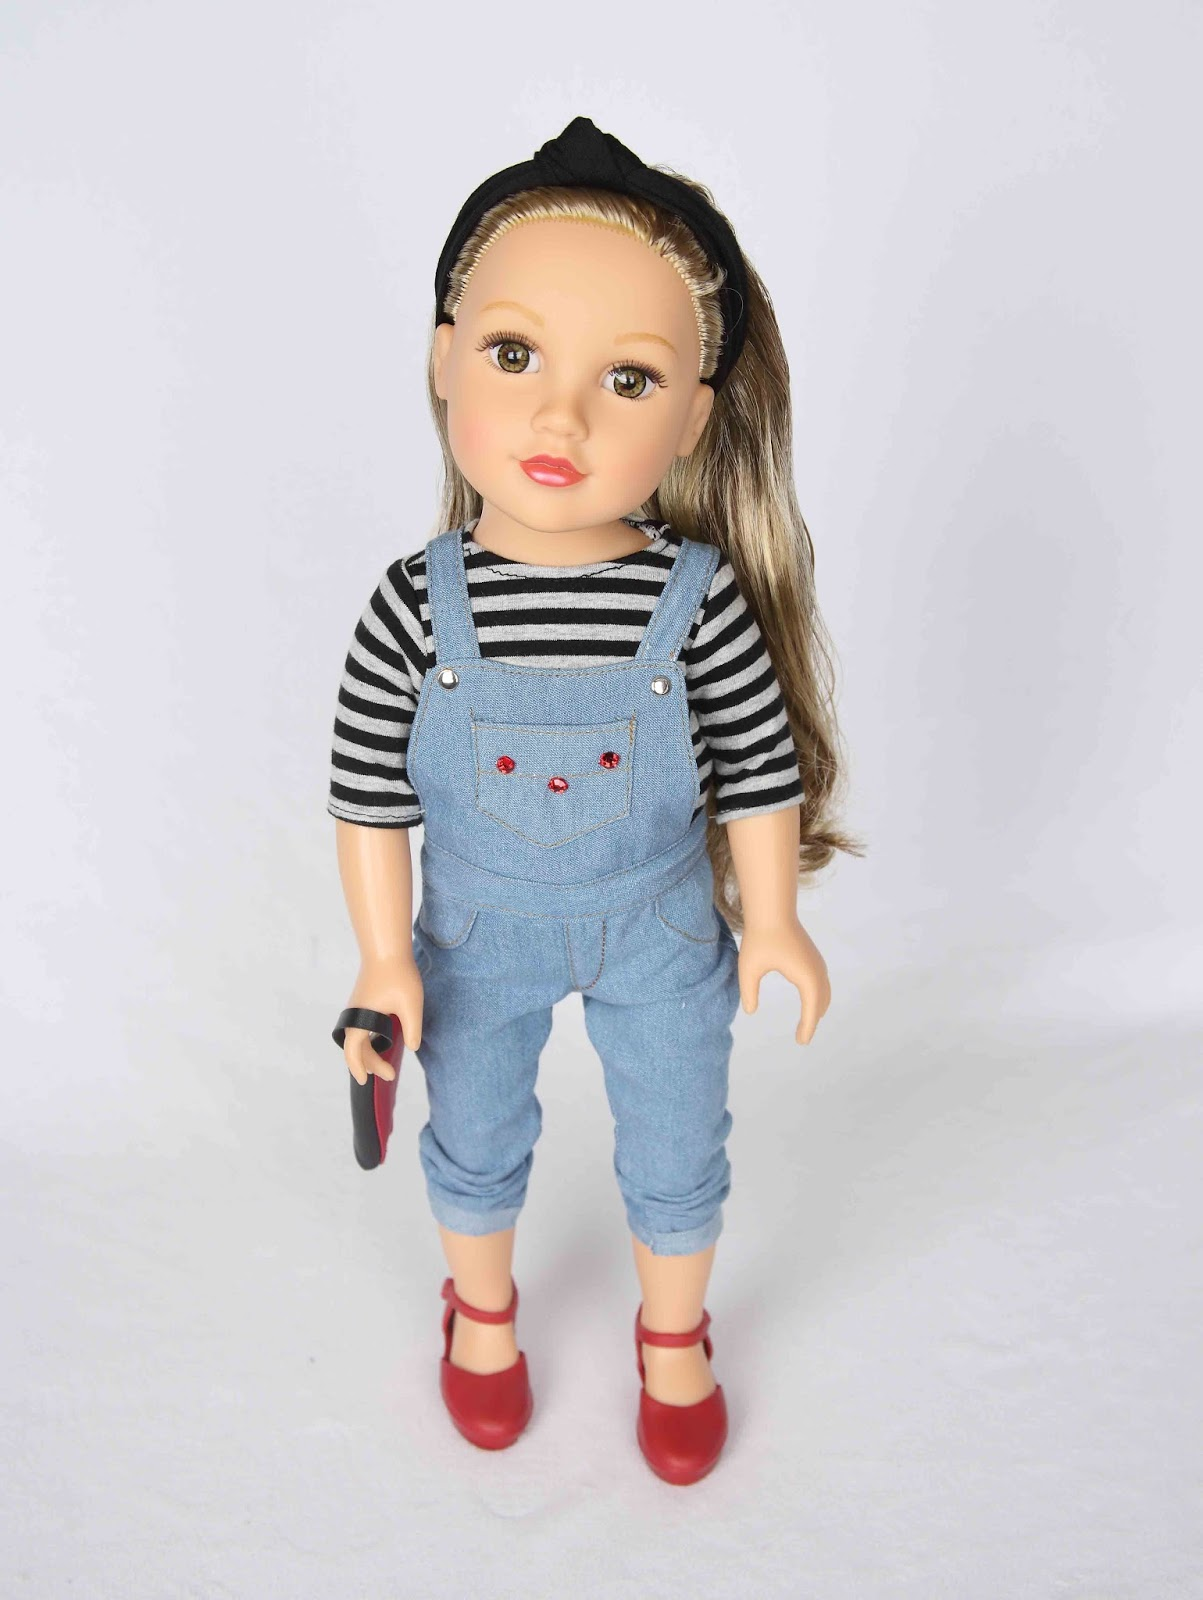 My Journey Girls Dolls Adventures: Giovanna in a New